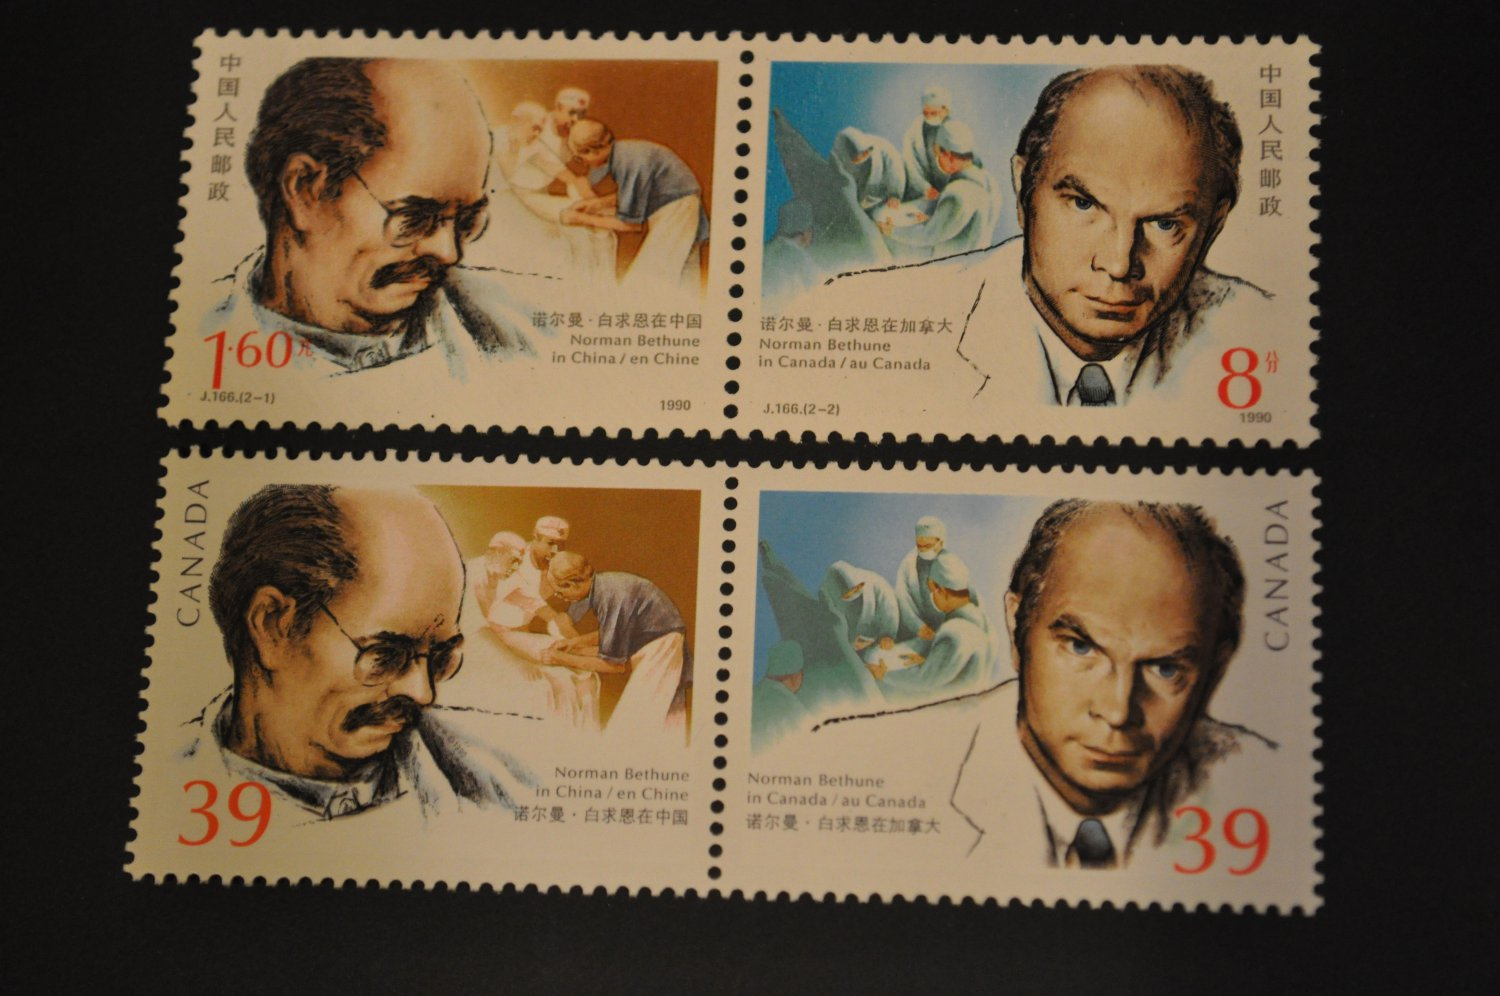 Setanent Stamps China SC#2263-2264 & Canada SC#1265a Dr. Norman Bethune 1990